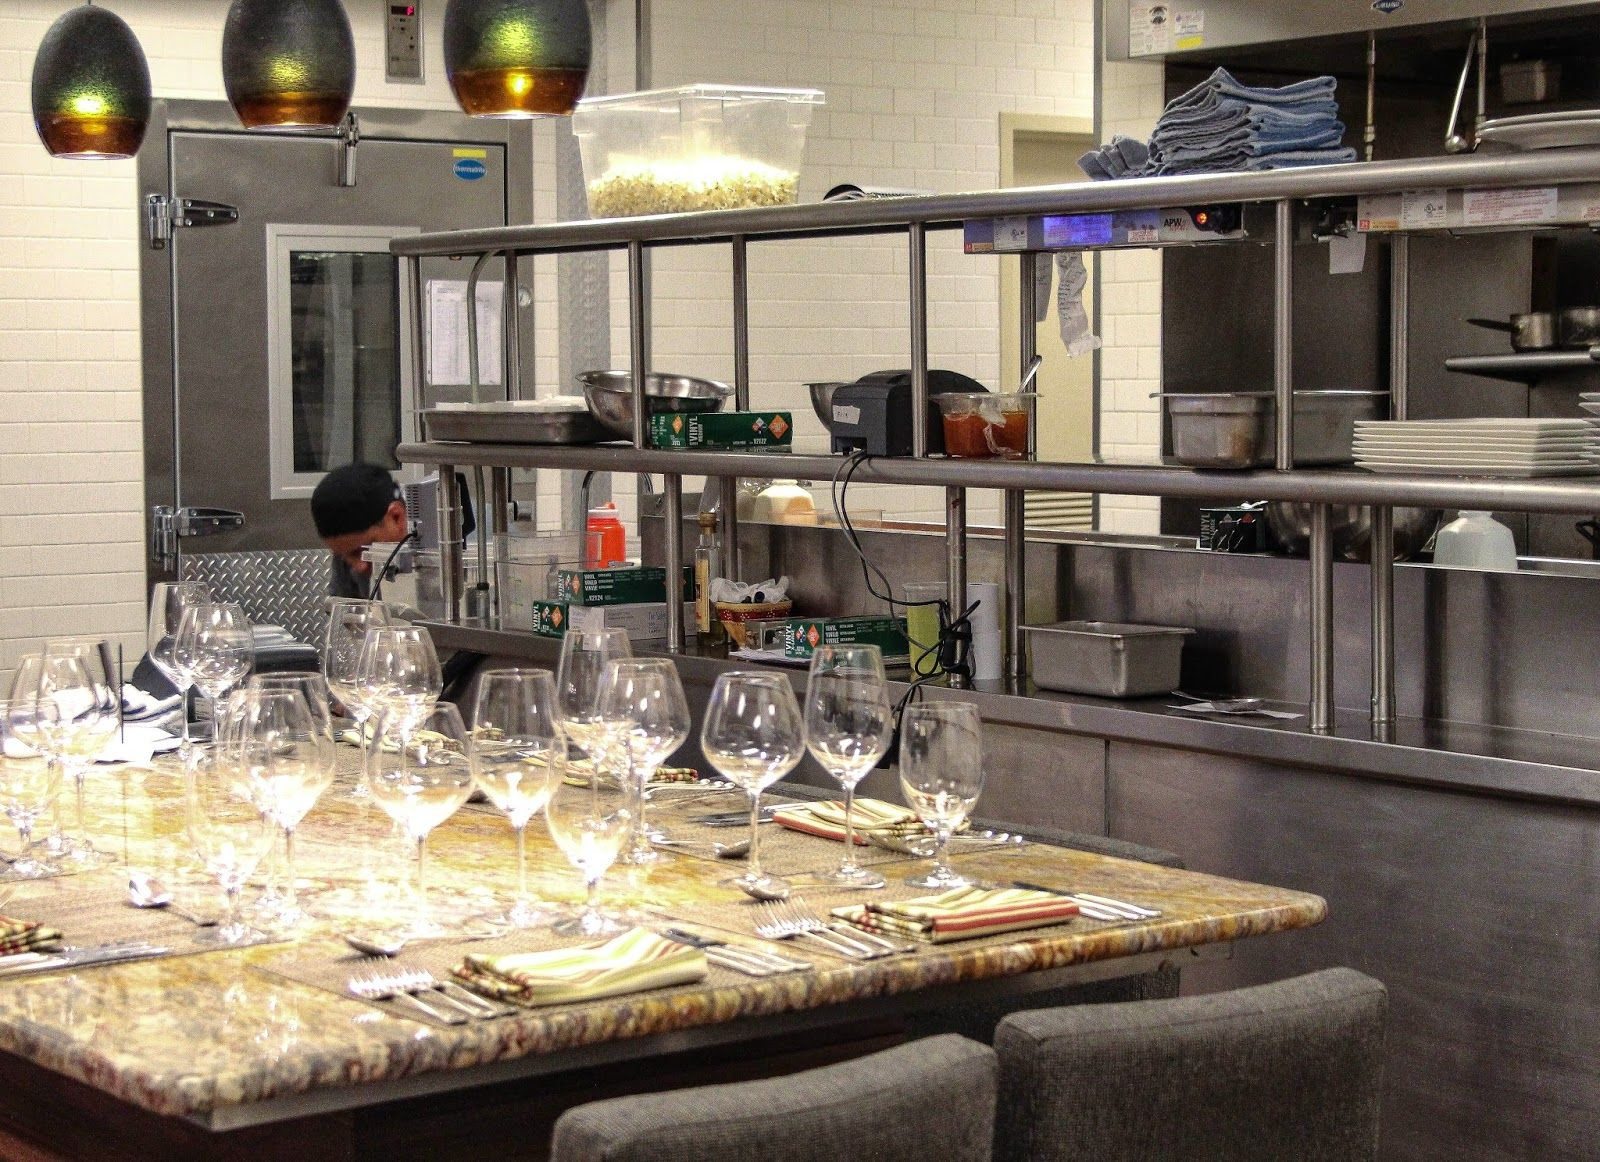 Image result for chef's table in restaurant kitchen